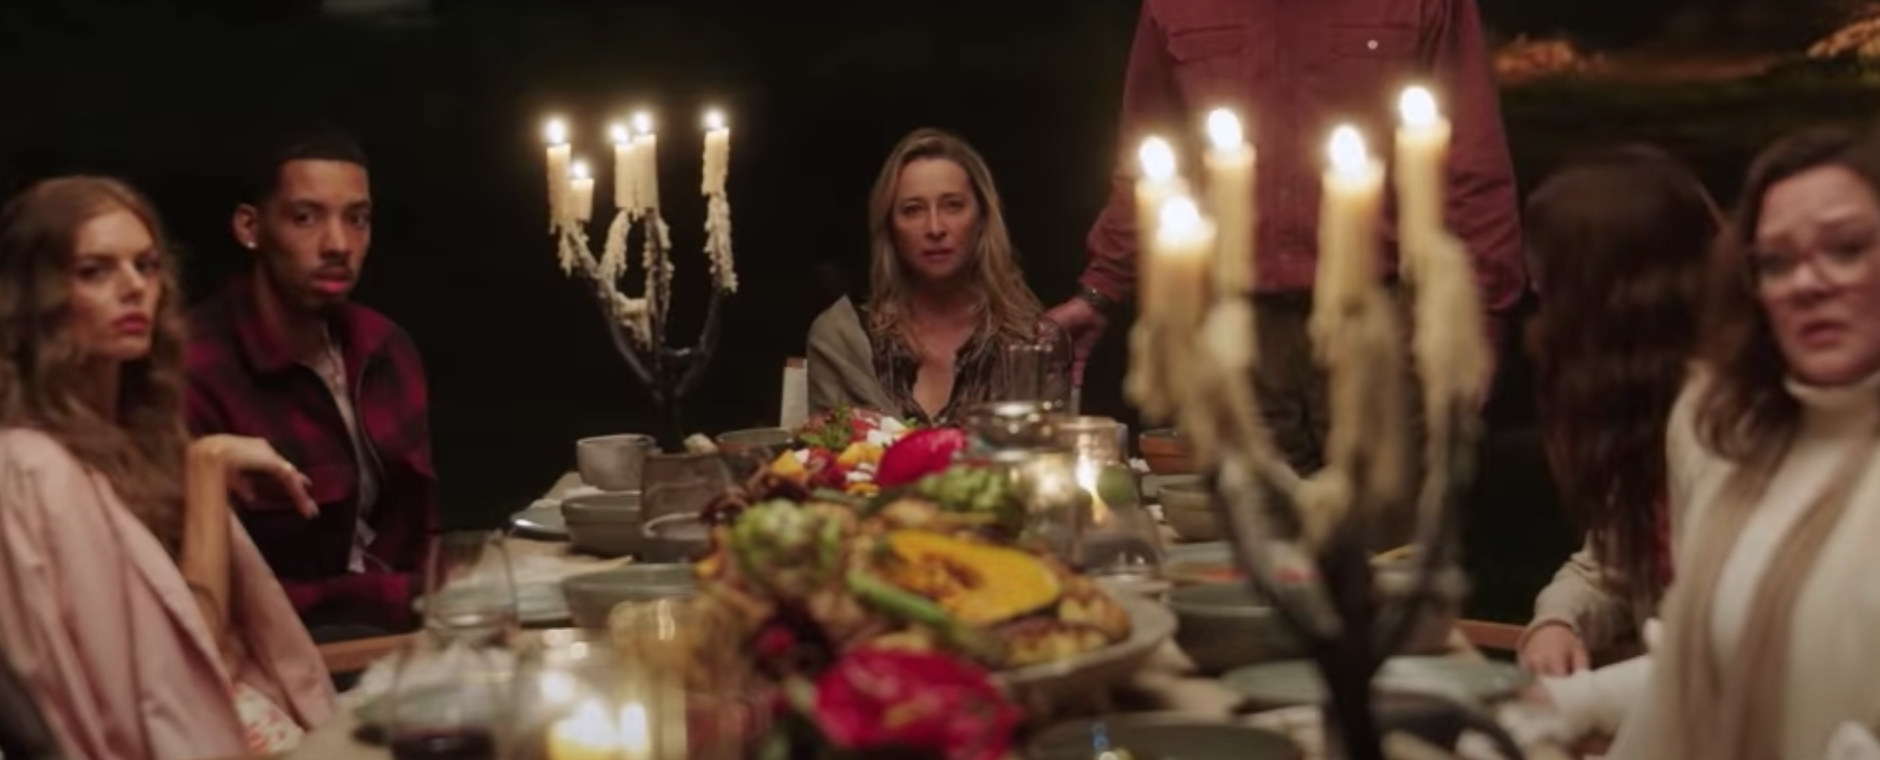 The cast of Nine Perfect Strangers sits at a long dinner table